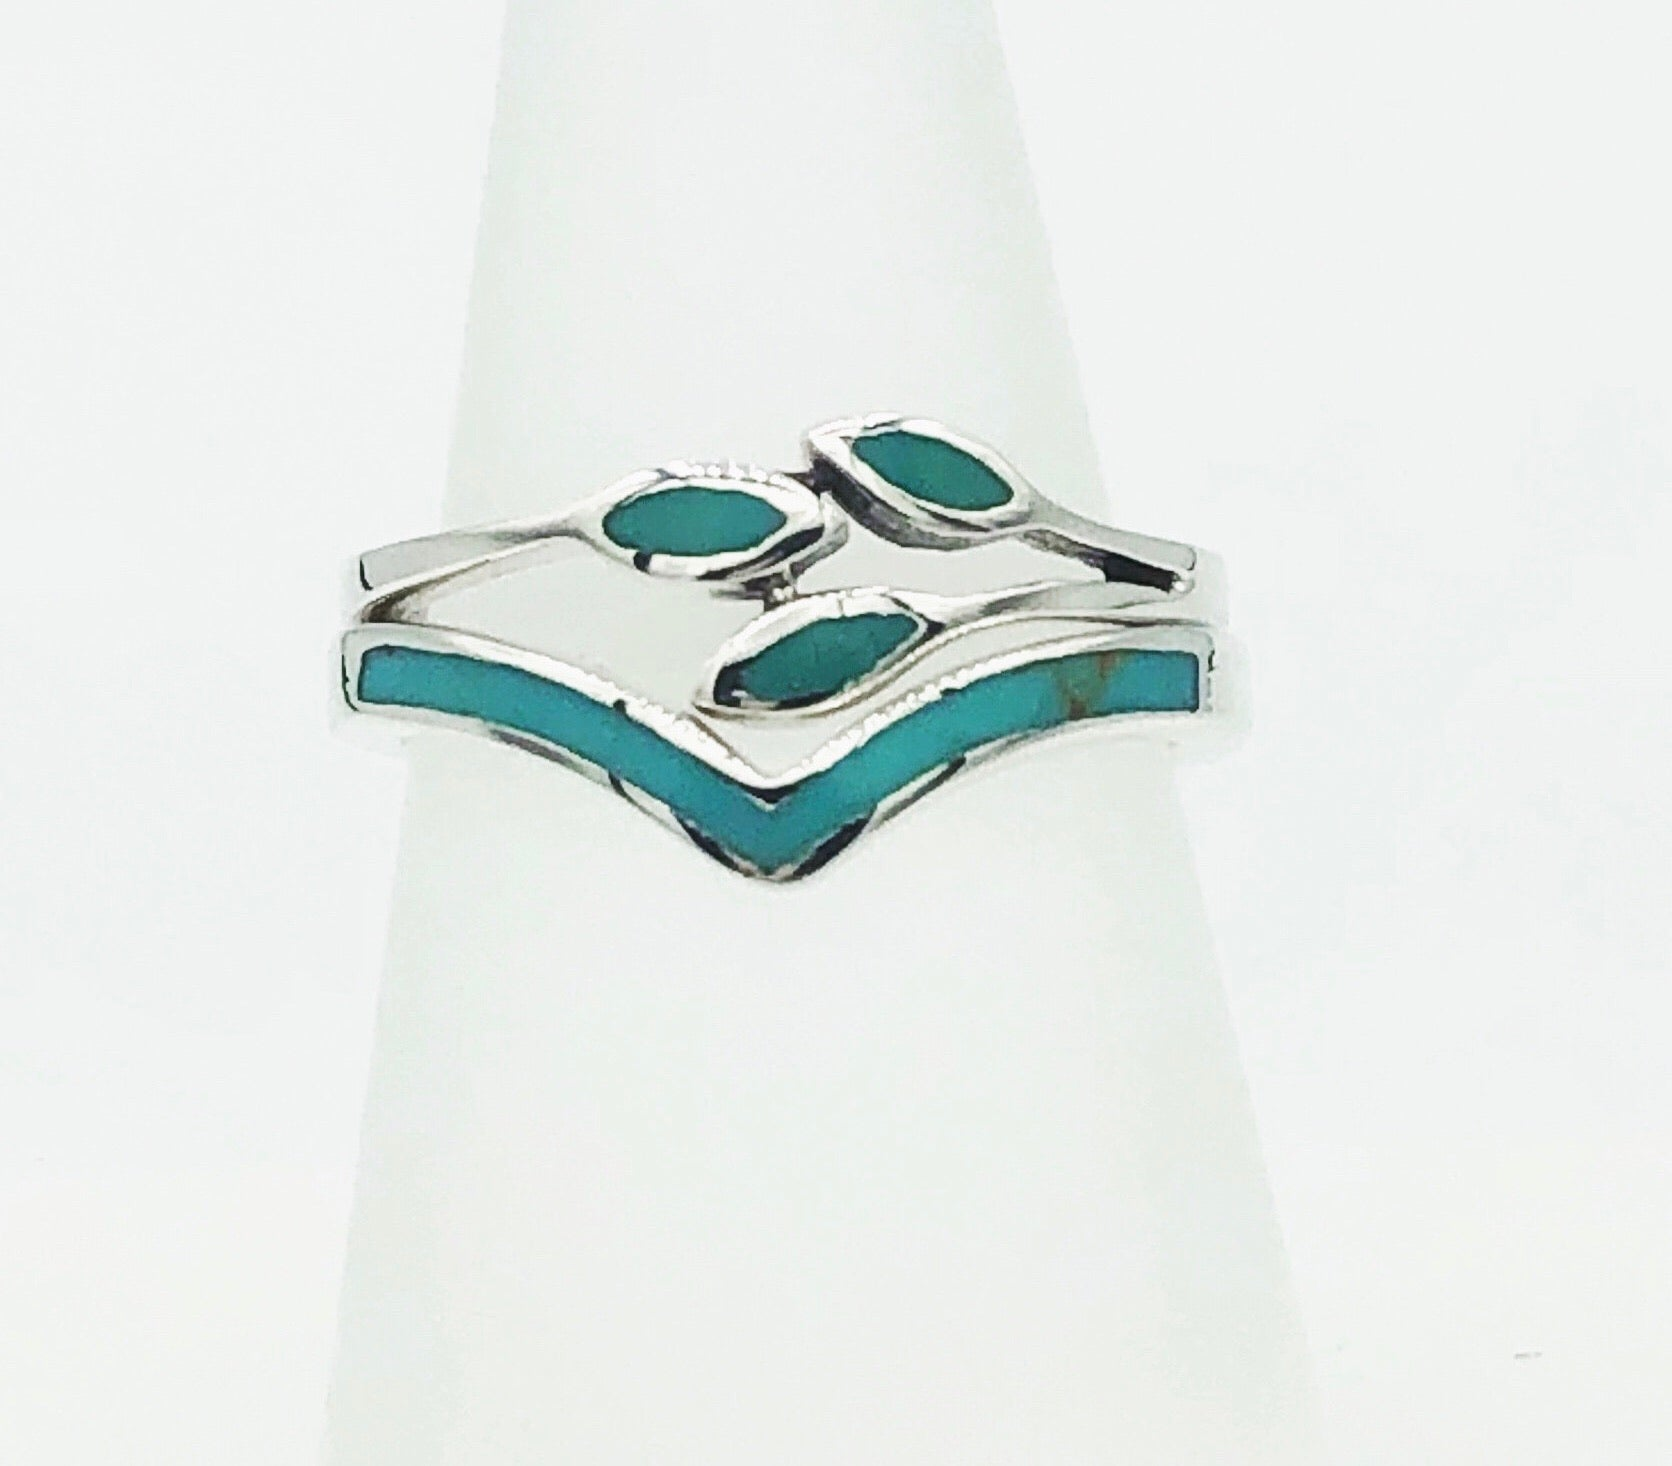 Abby Turquoise Ring